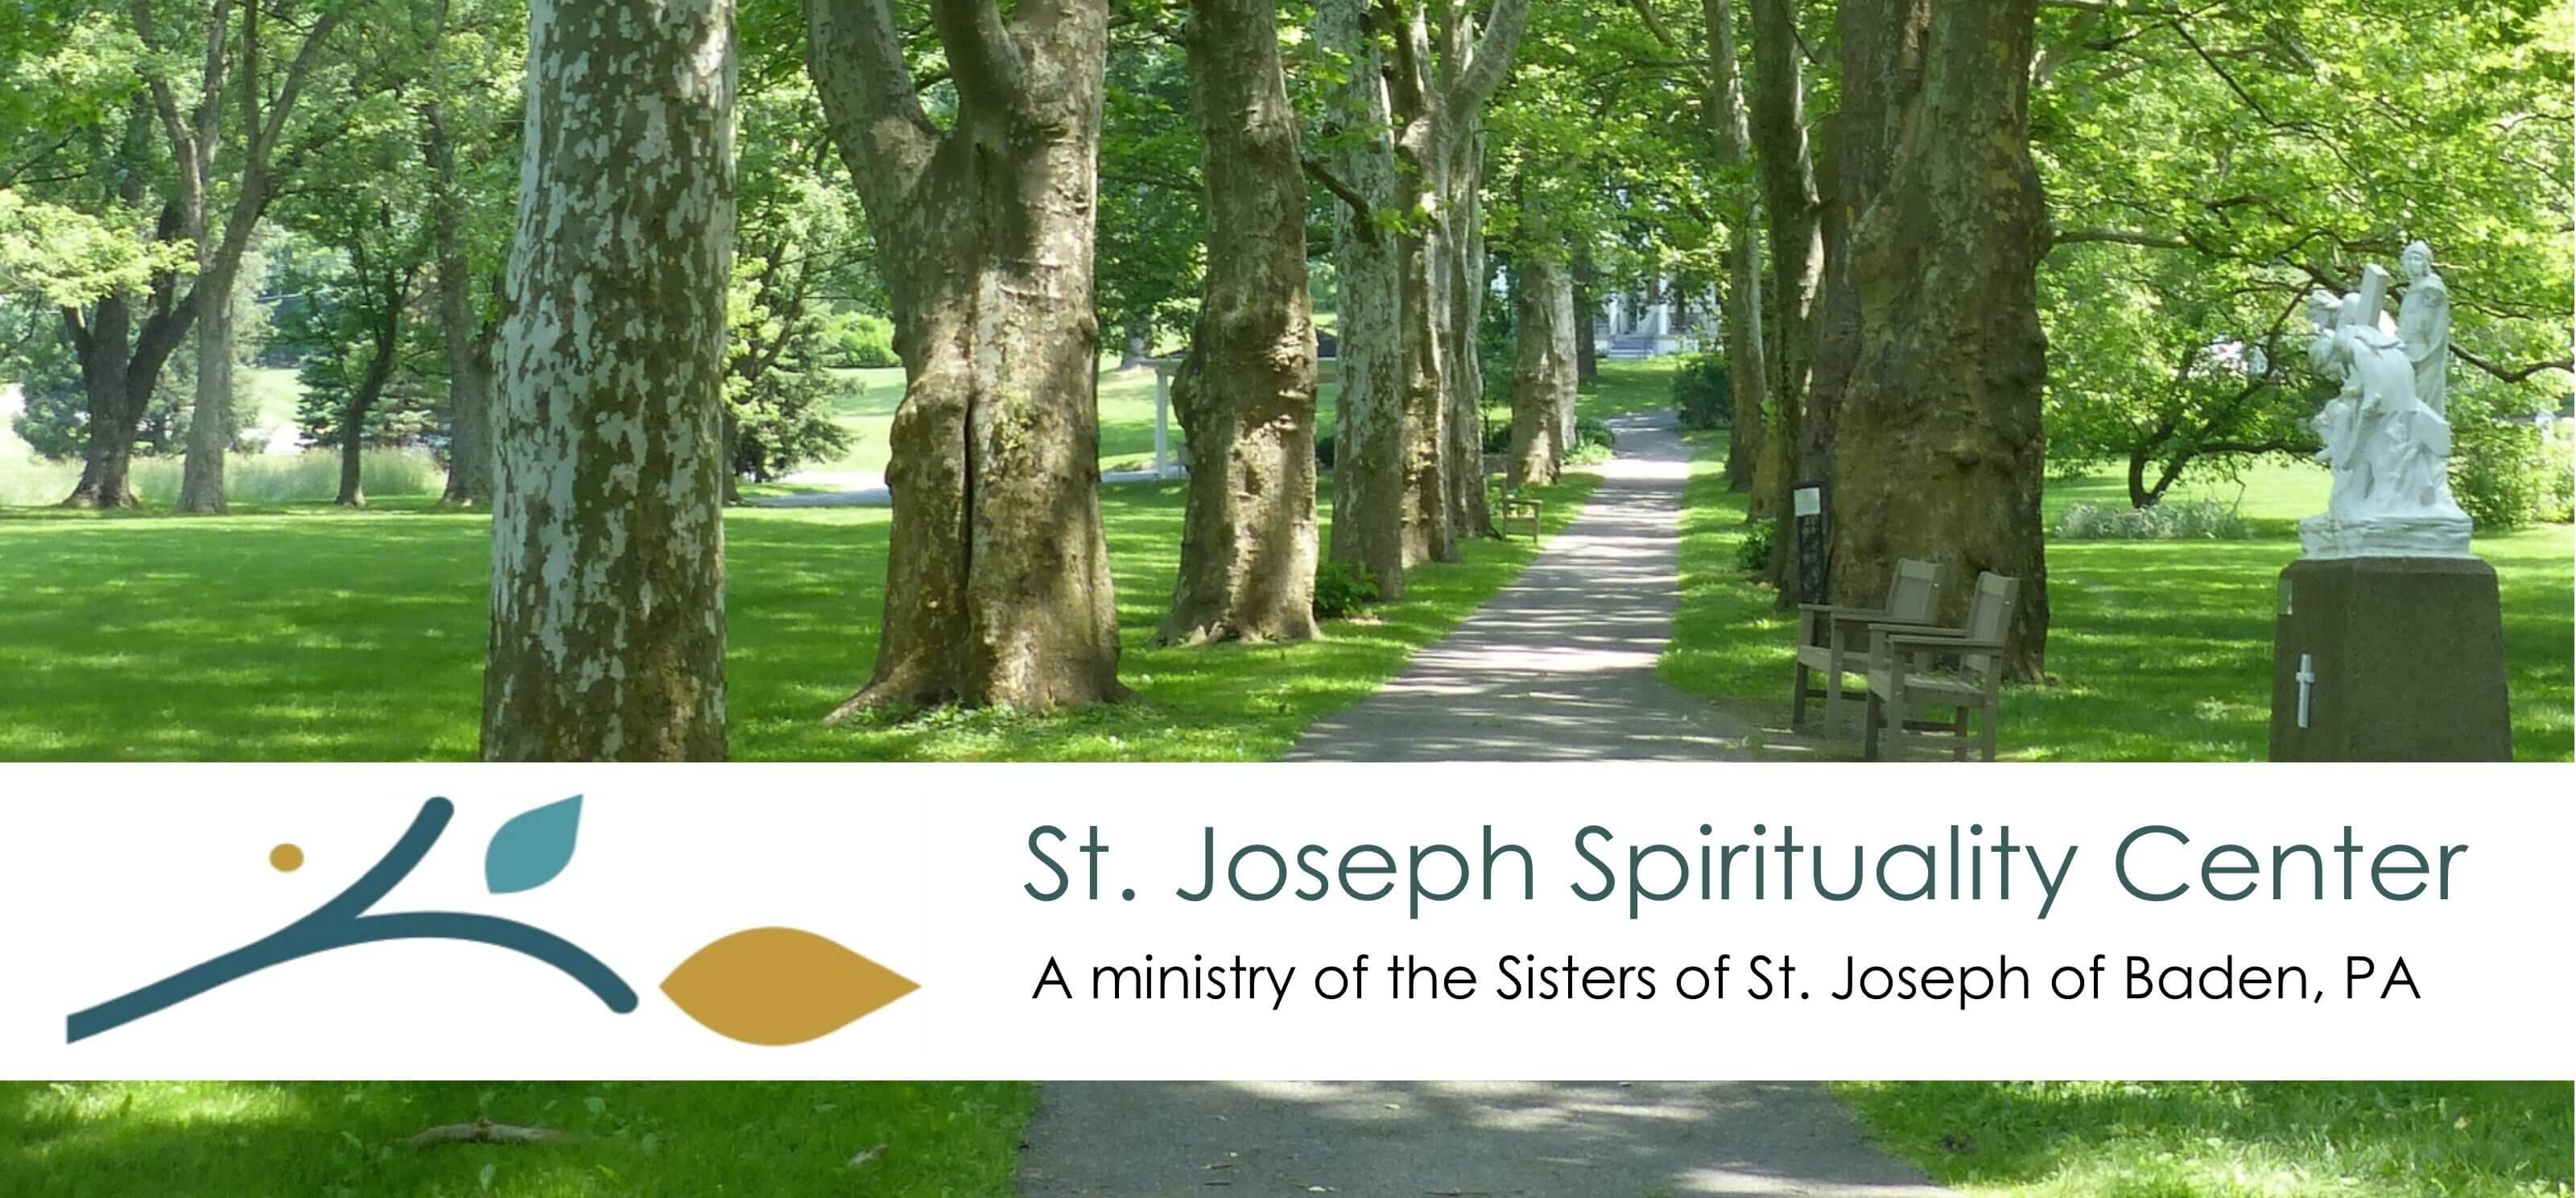 St Joseph Spirituality Center, a ministry of the Sisters of St. Joseph of Baden